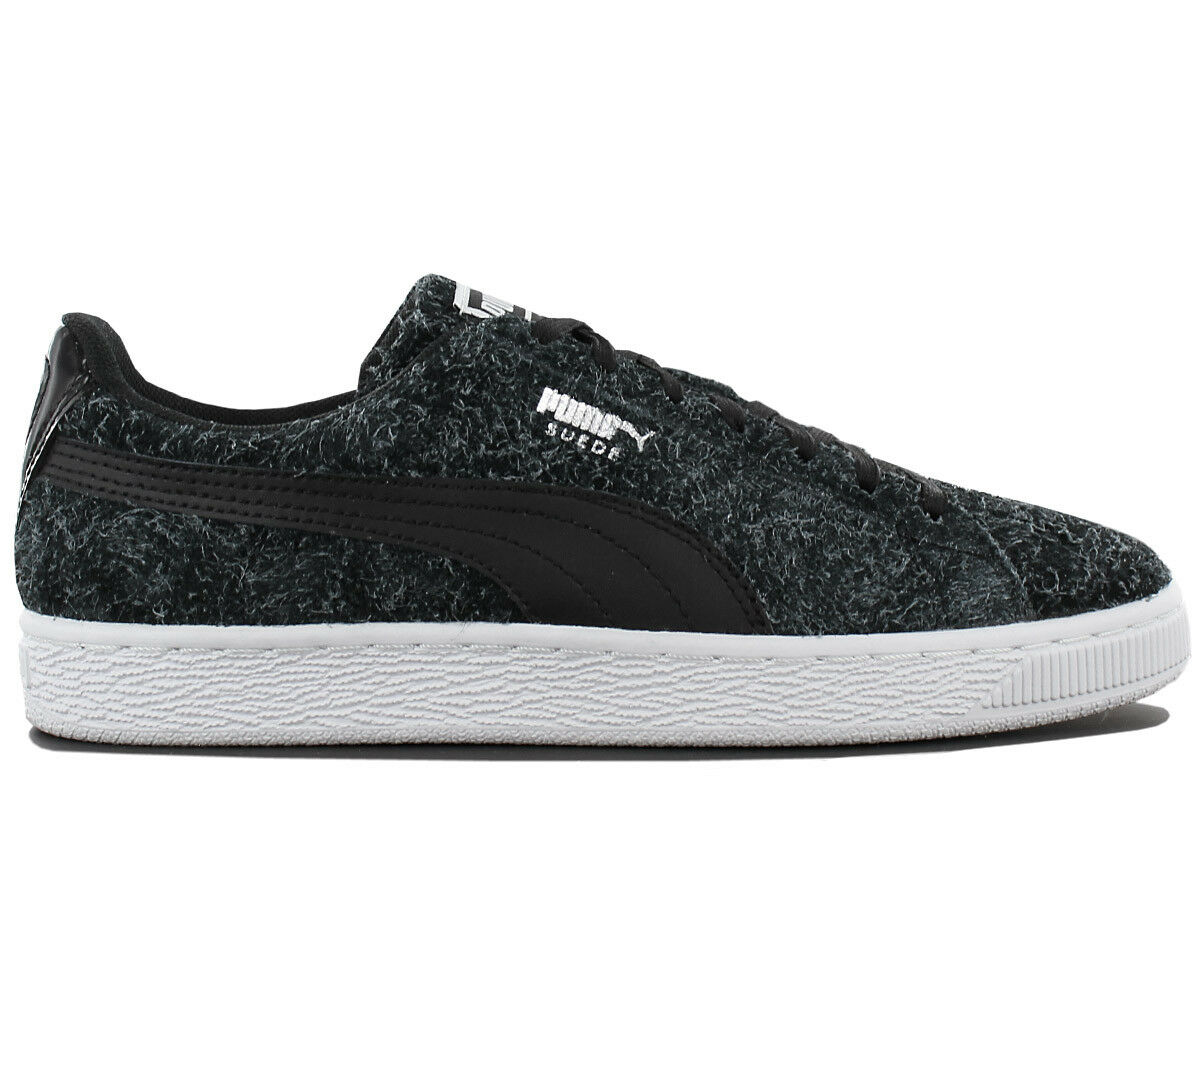 Puma Suede Elemental Ladies Fashion Trainers Leather Shoes 361112 03 New